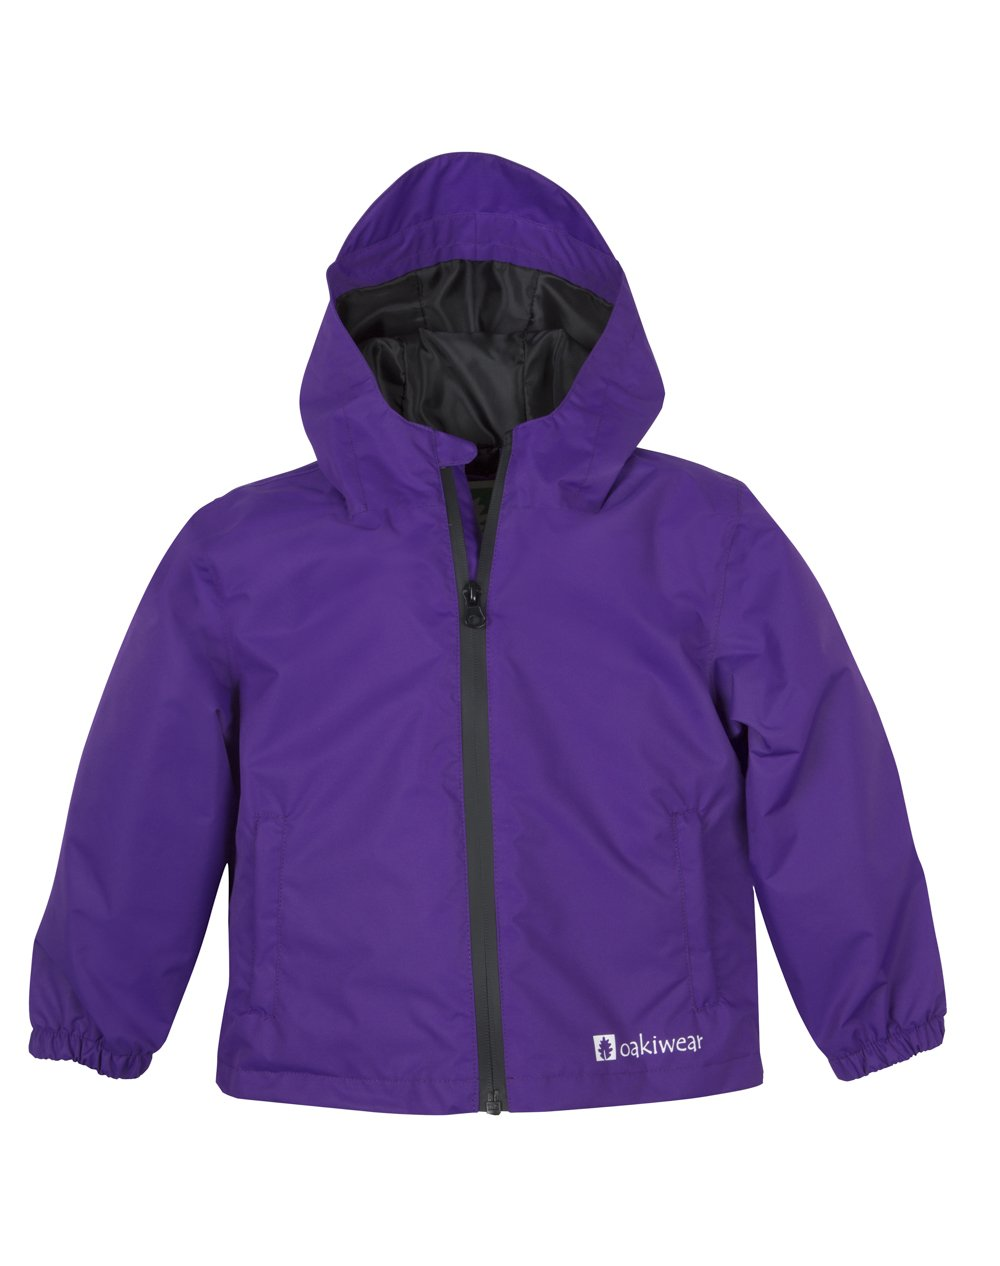 Oakiwear Kids Core Rain Jacket Galaxy Purple 3T by Oakiwear